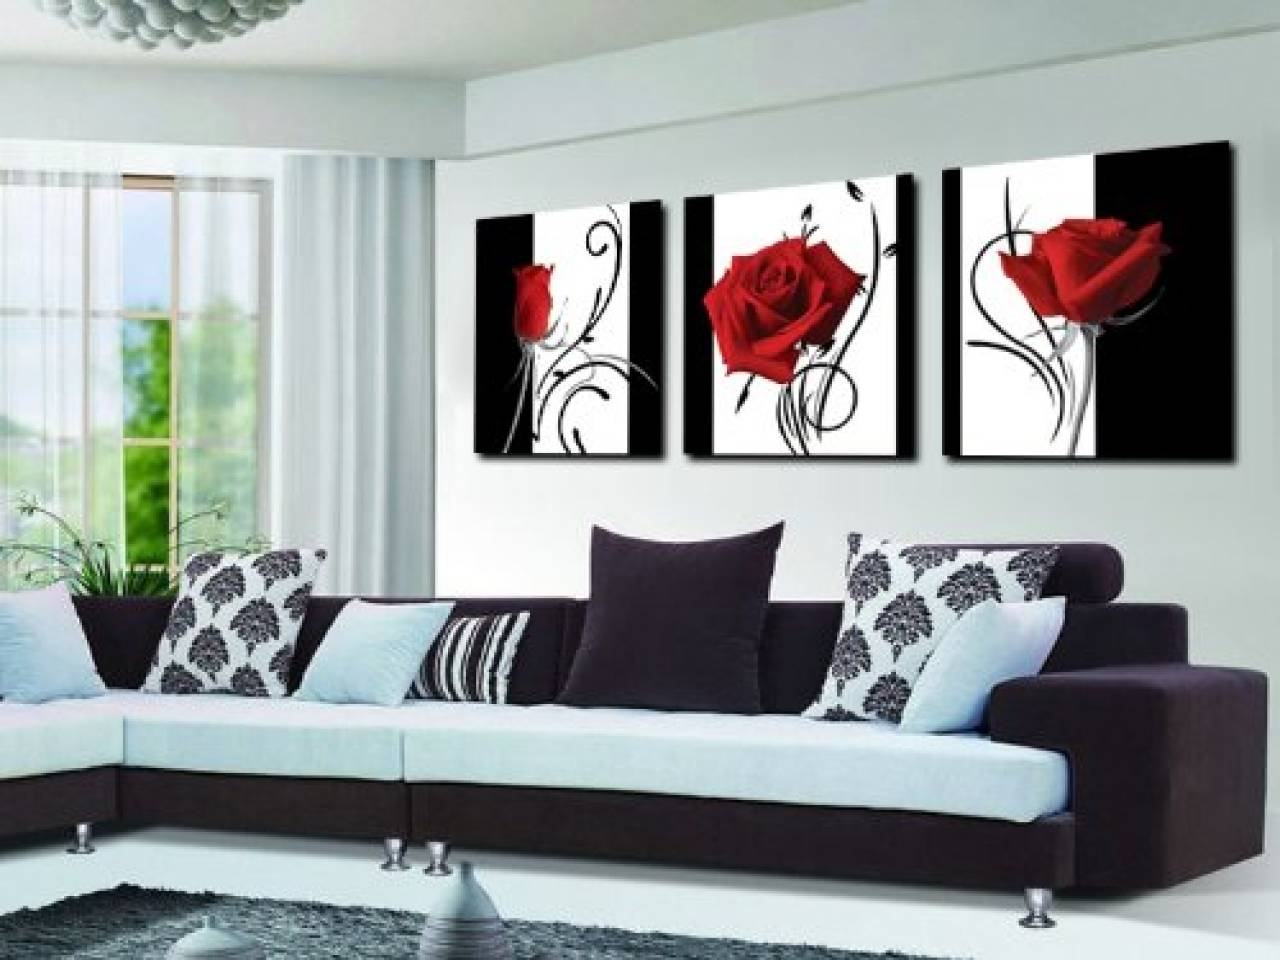 Modern White And Silver Kitchens, Red Black White Canvas Wall Art Throughout Best And Newest Black And White Wall Art With Red (View 24 of 25)